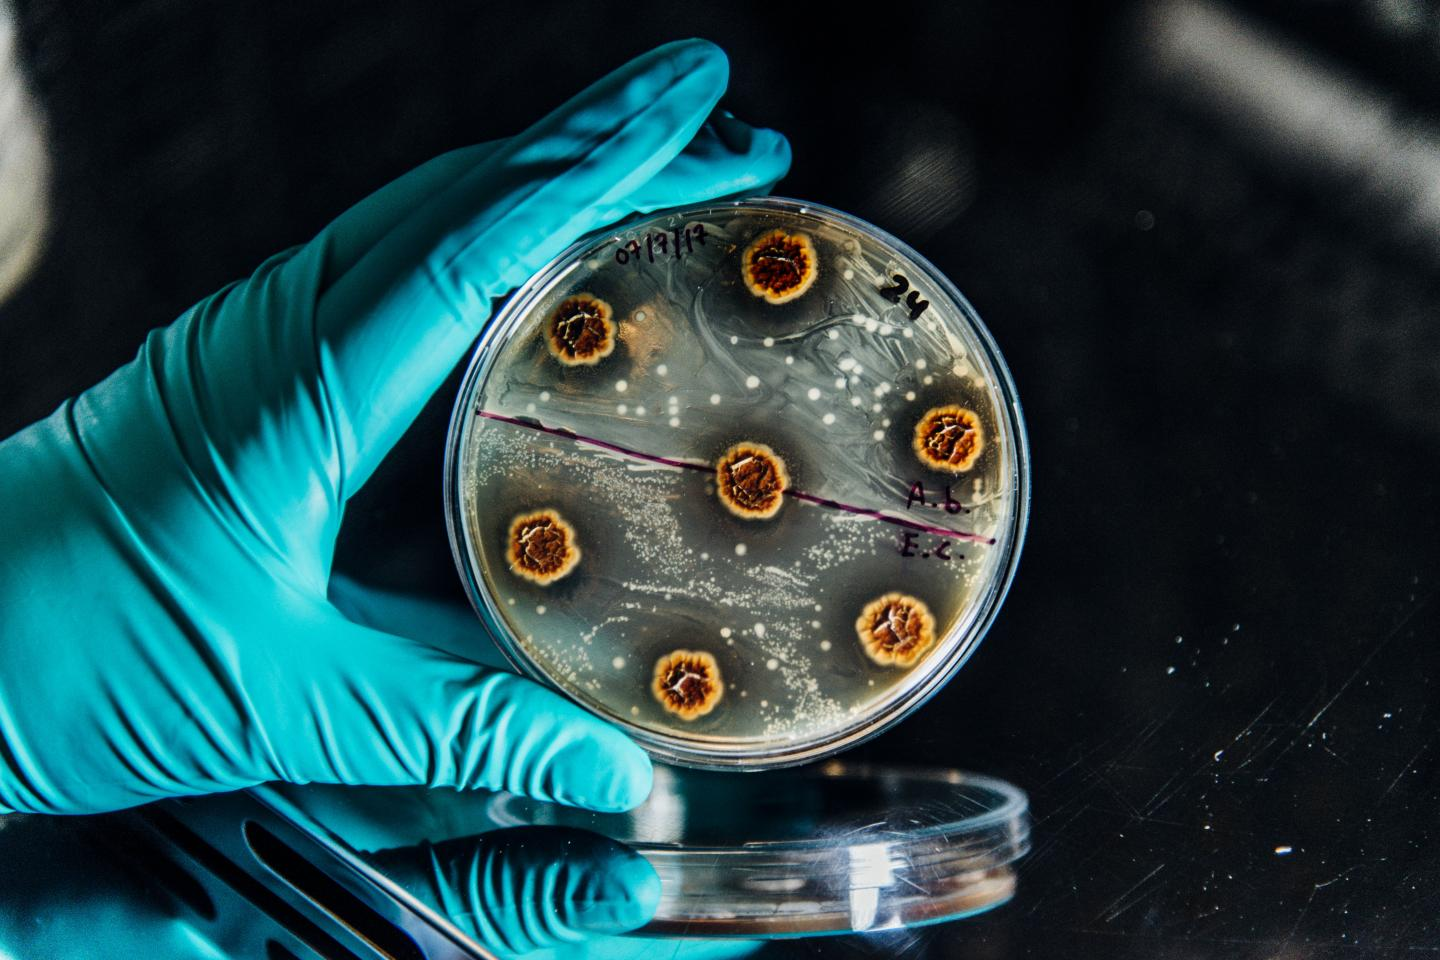 Bacteria on a Plate